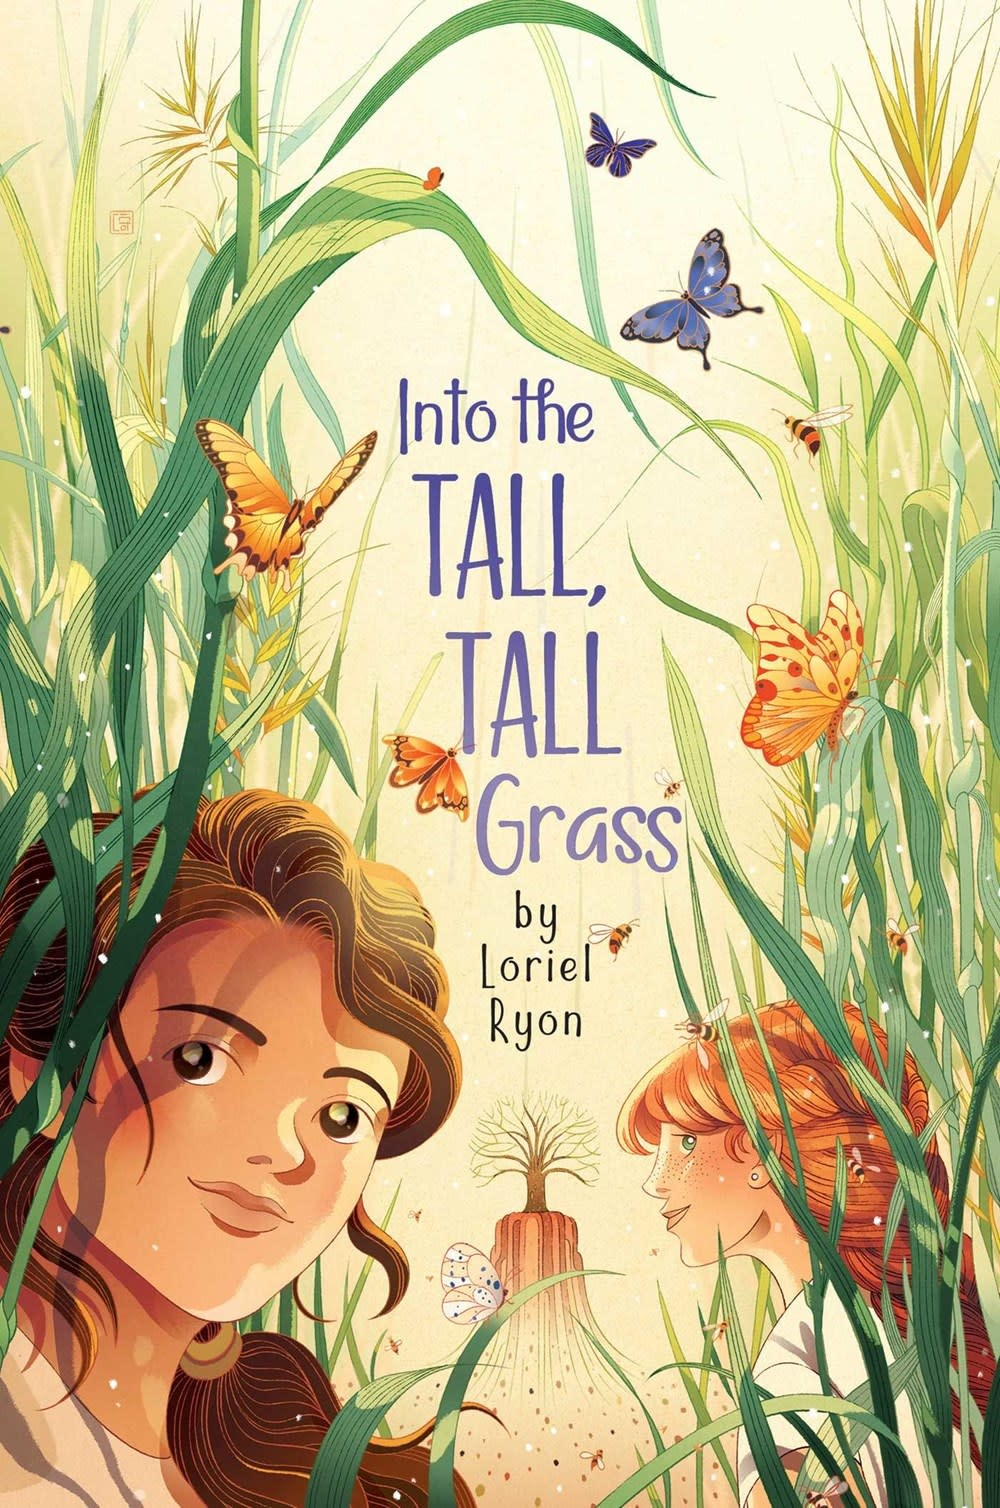 Margaret K. McElderry Books Into the Tall, Tall Grass